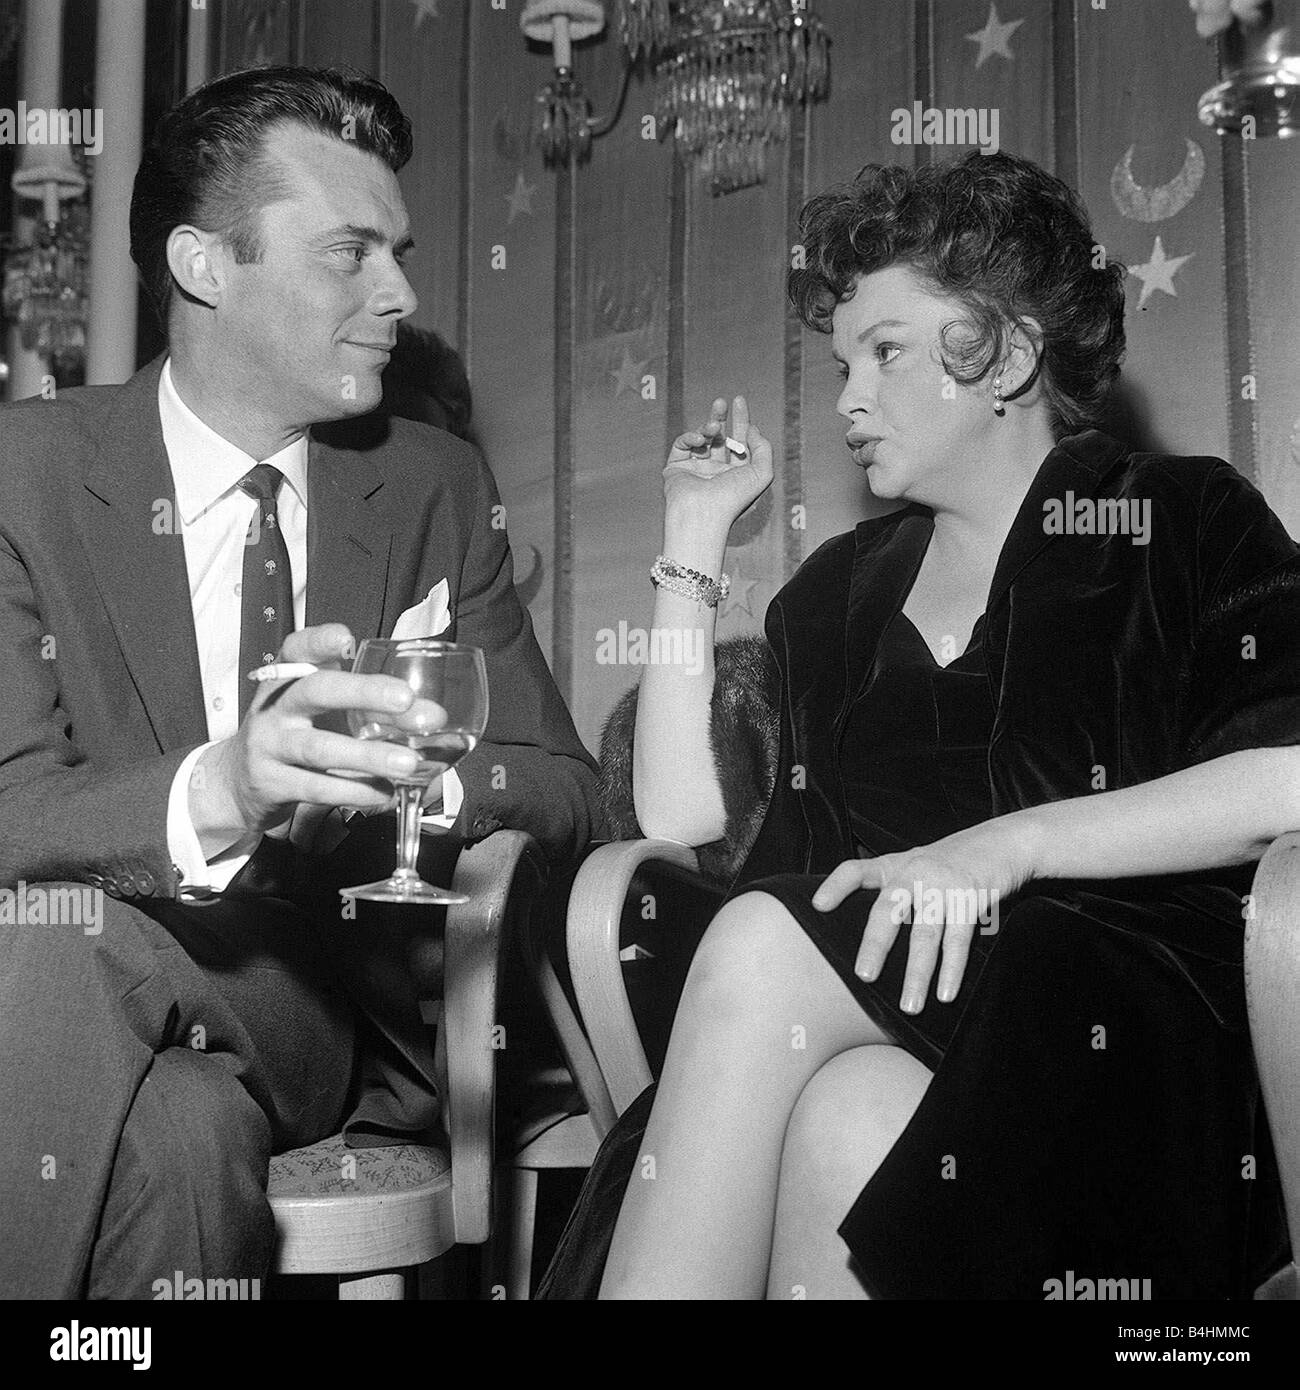 https://c8.alamy.com/comp/B4HMMC/judy-garland-may-1962-with-dirk-bogarde-at-a-party-at-a-london-hotel-B4HMMC.jpg